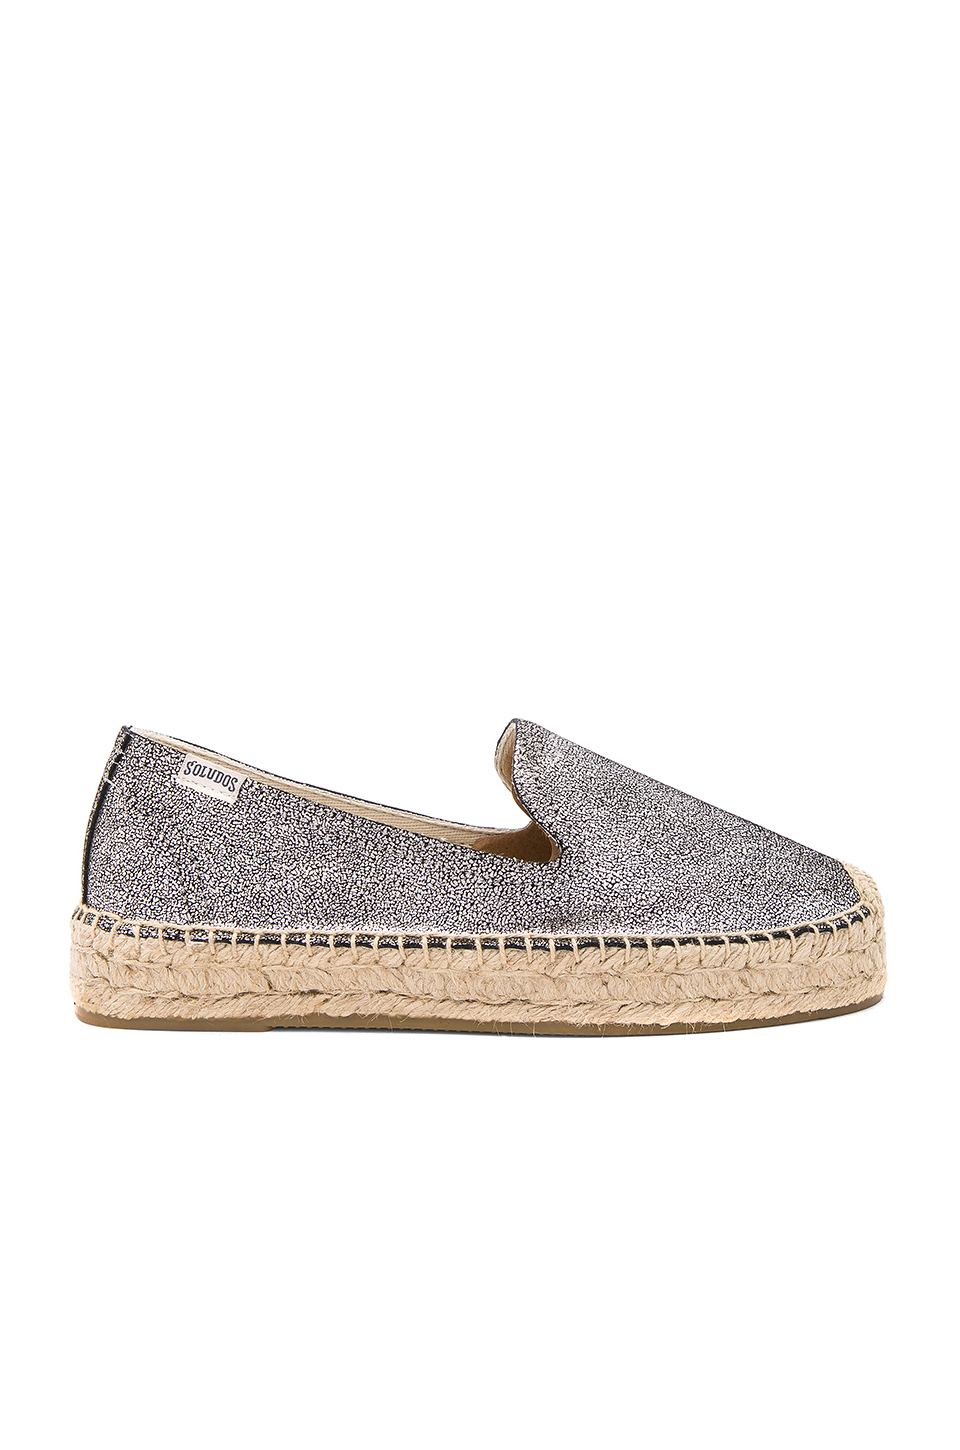 Soludos Metallic Smoking Slipper in Silver